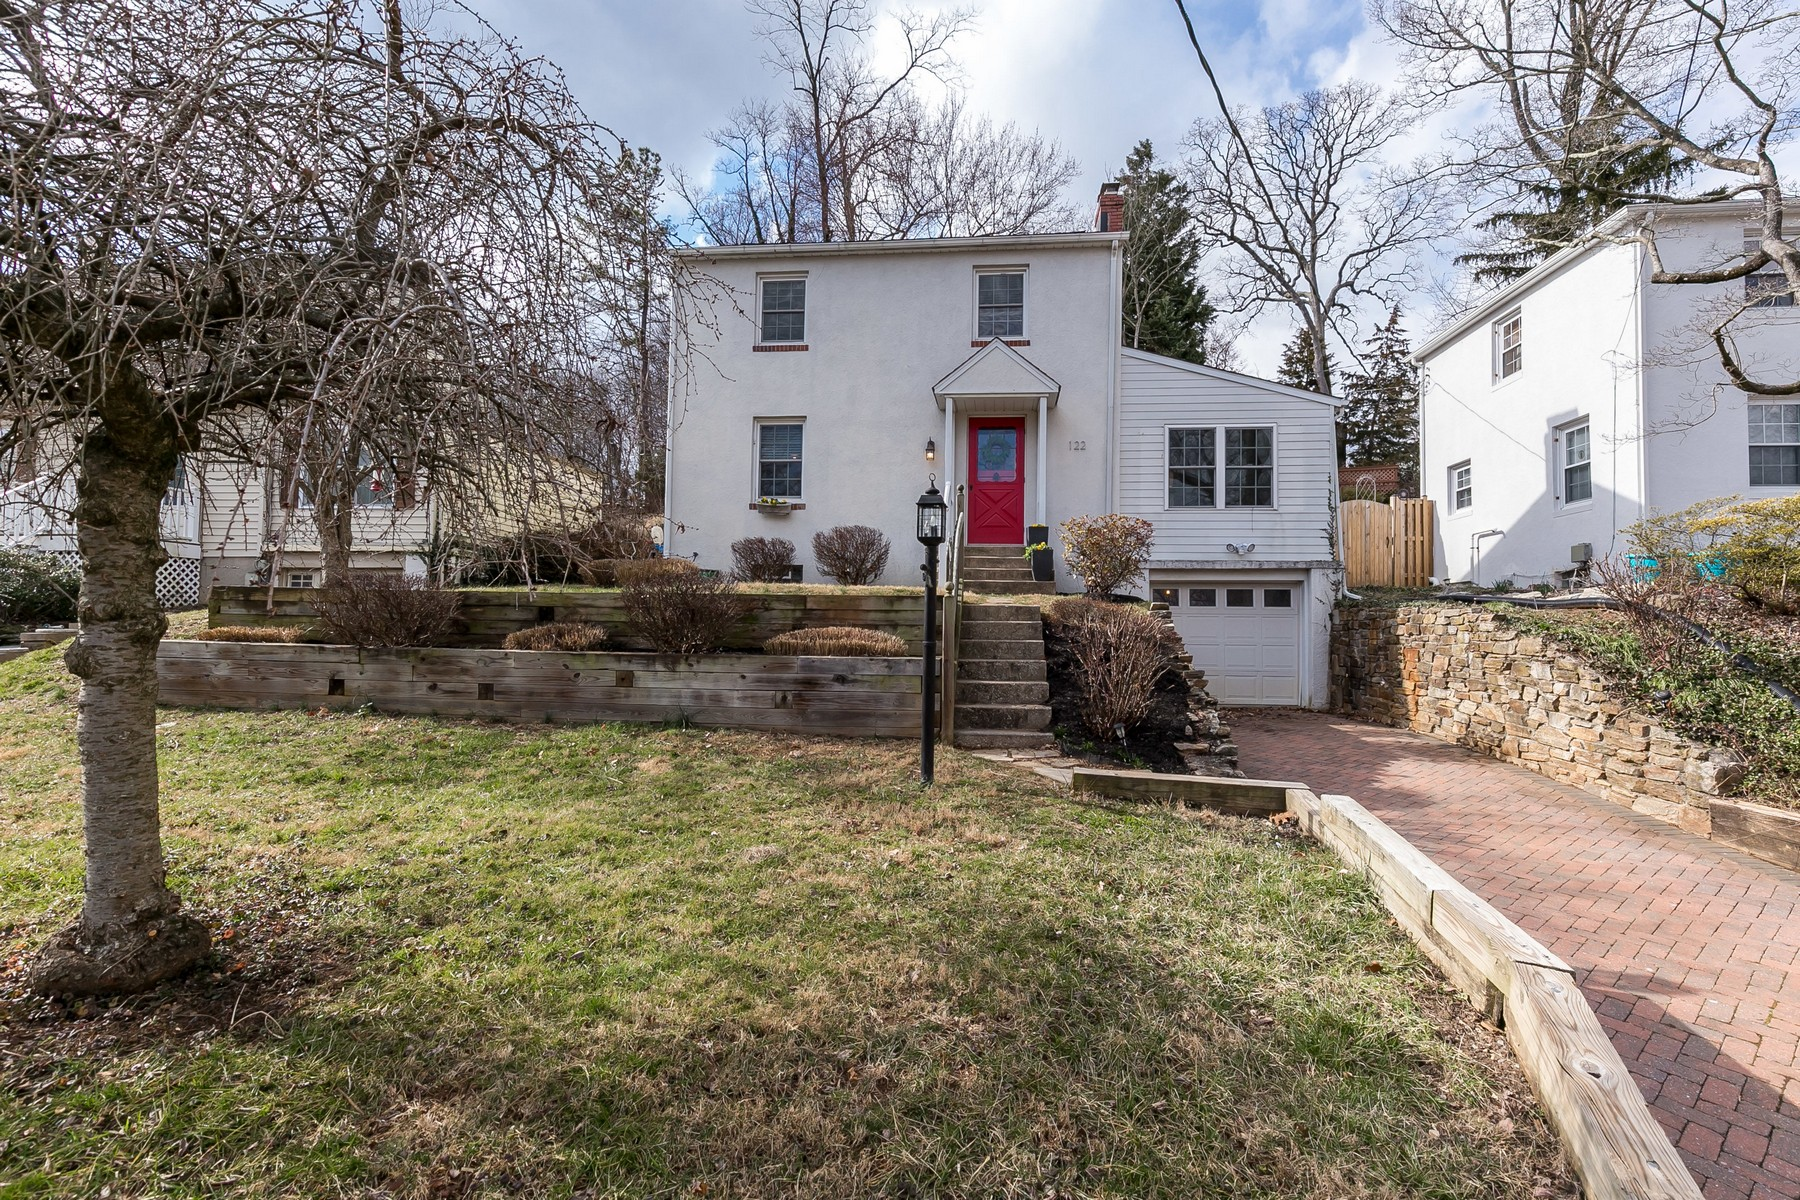 Single Family Homes for Sale at Great House, Great Neighborhood, Great Schools 122 Green Ridge Road Lutherville Timonium, Maryland 21093 United States